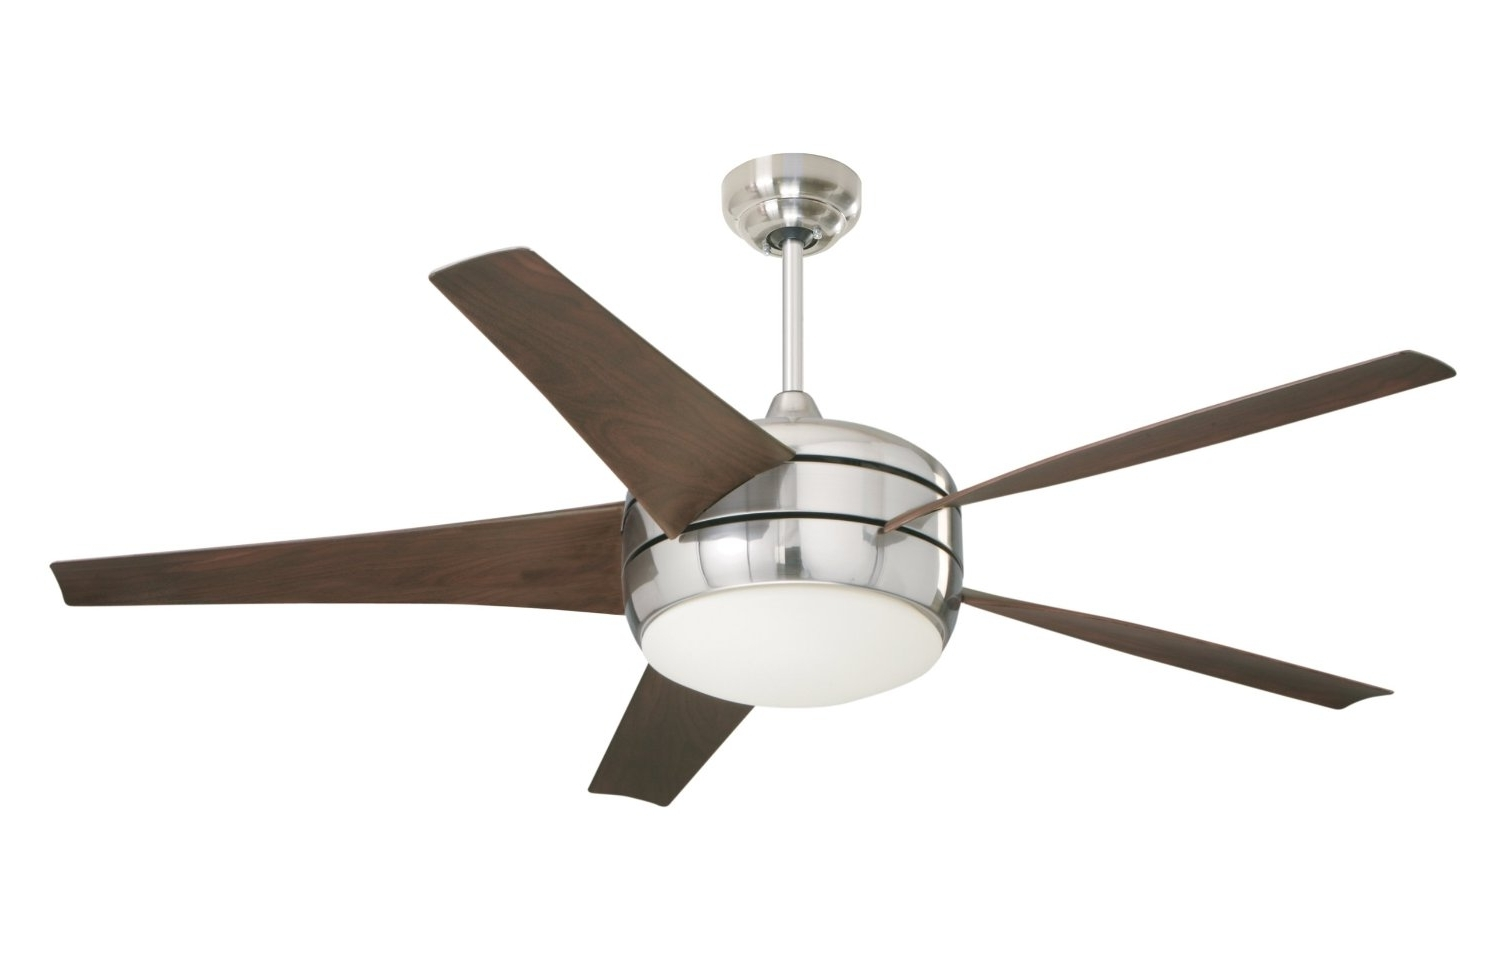 Best Ceiling Fans Reviews, Buying Guide And Comparison 2018 Throughout Preferred Outdoor Ceiling Fans With High Cfm (View 18 of 20)